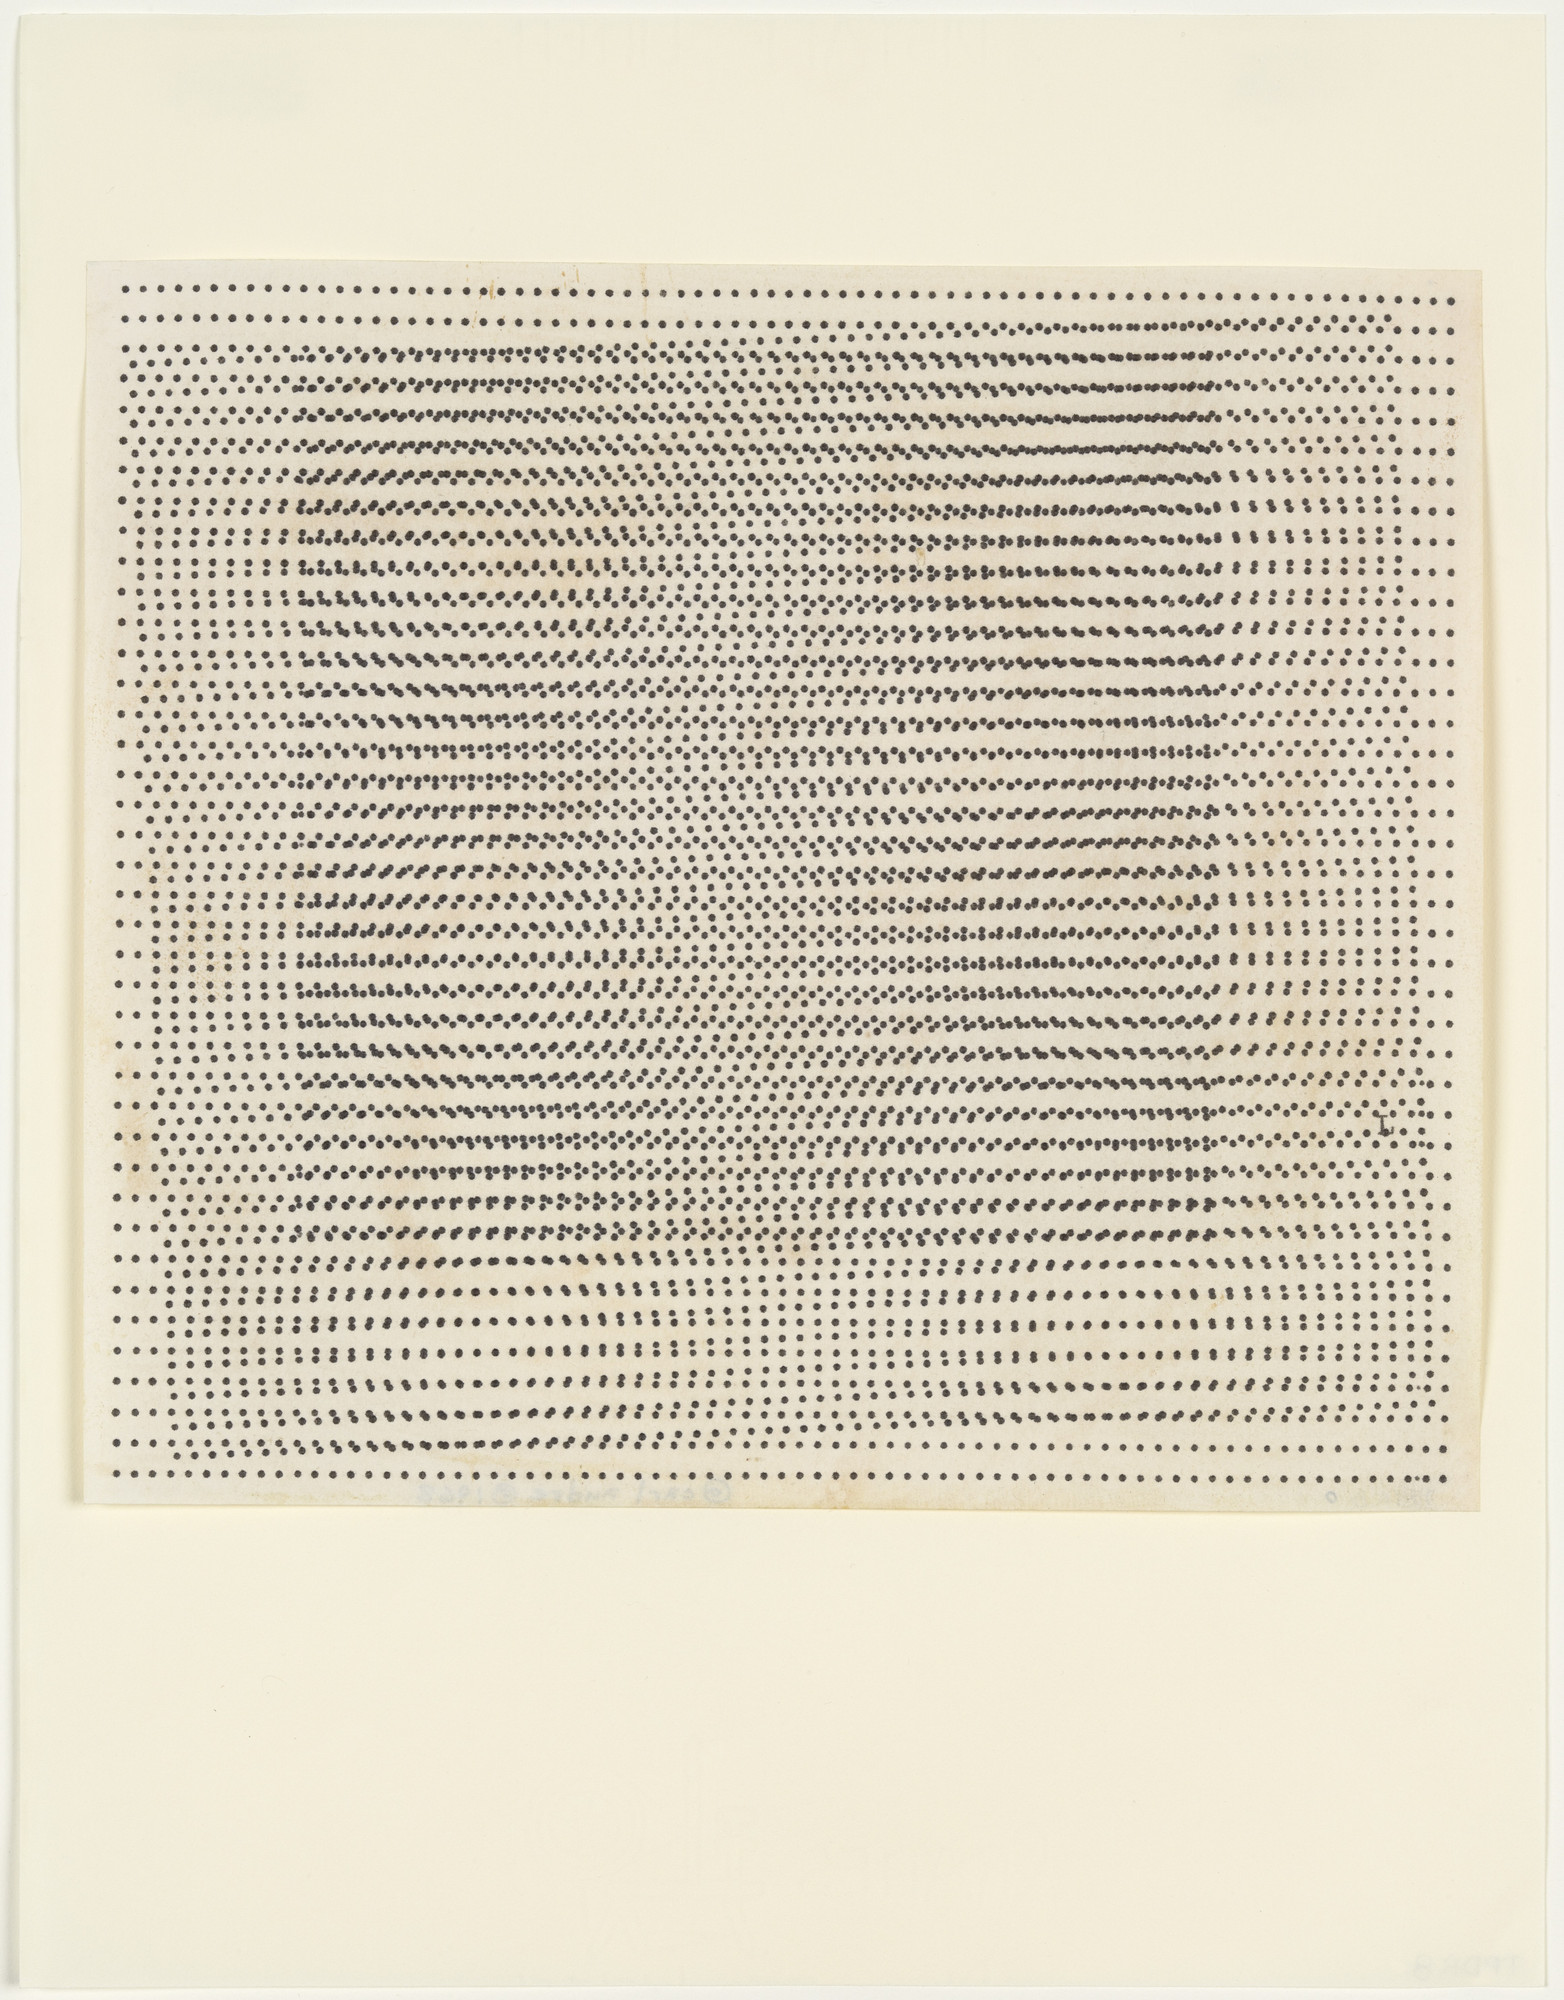 Carl Andre. Untitled. 1963